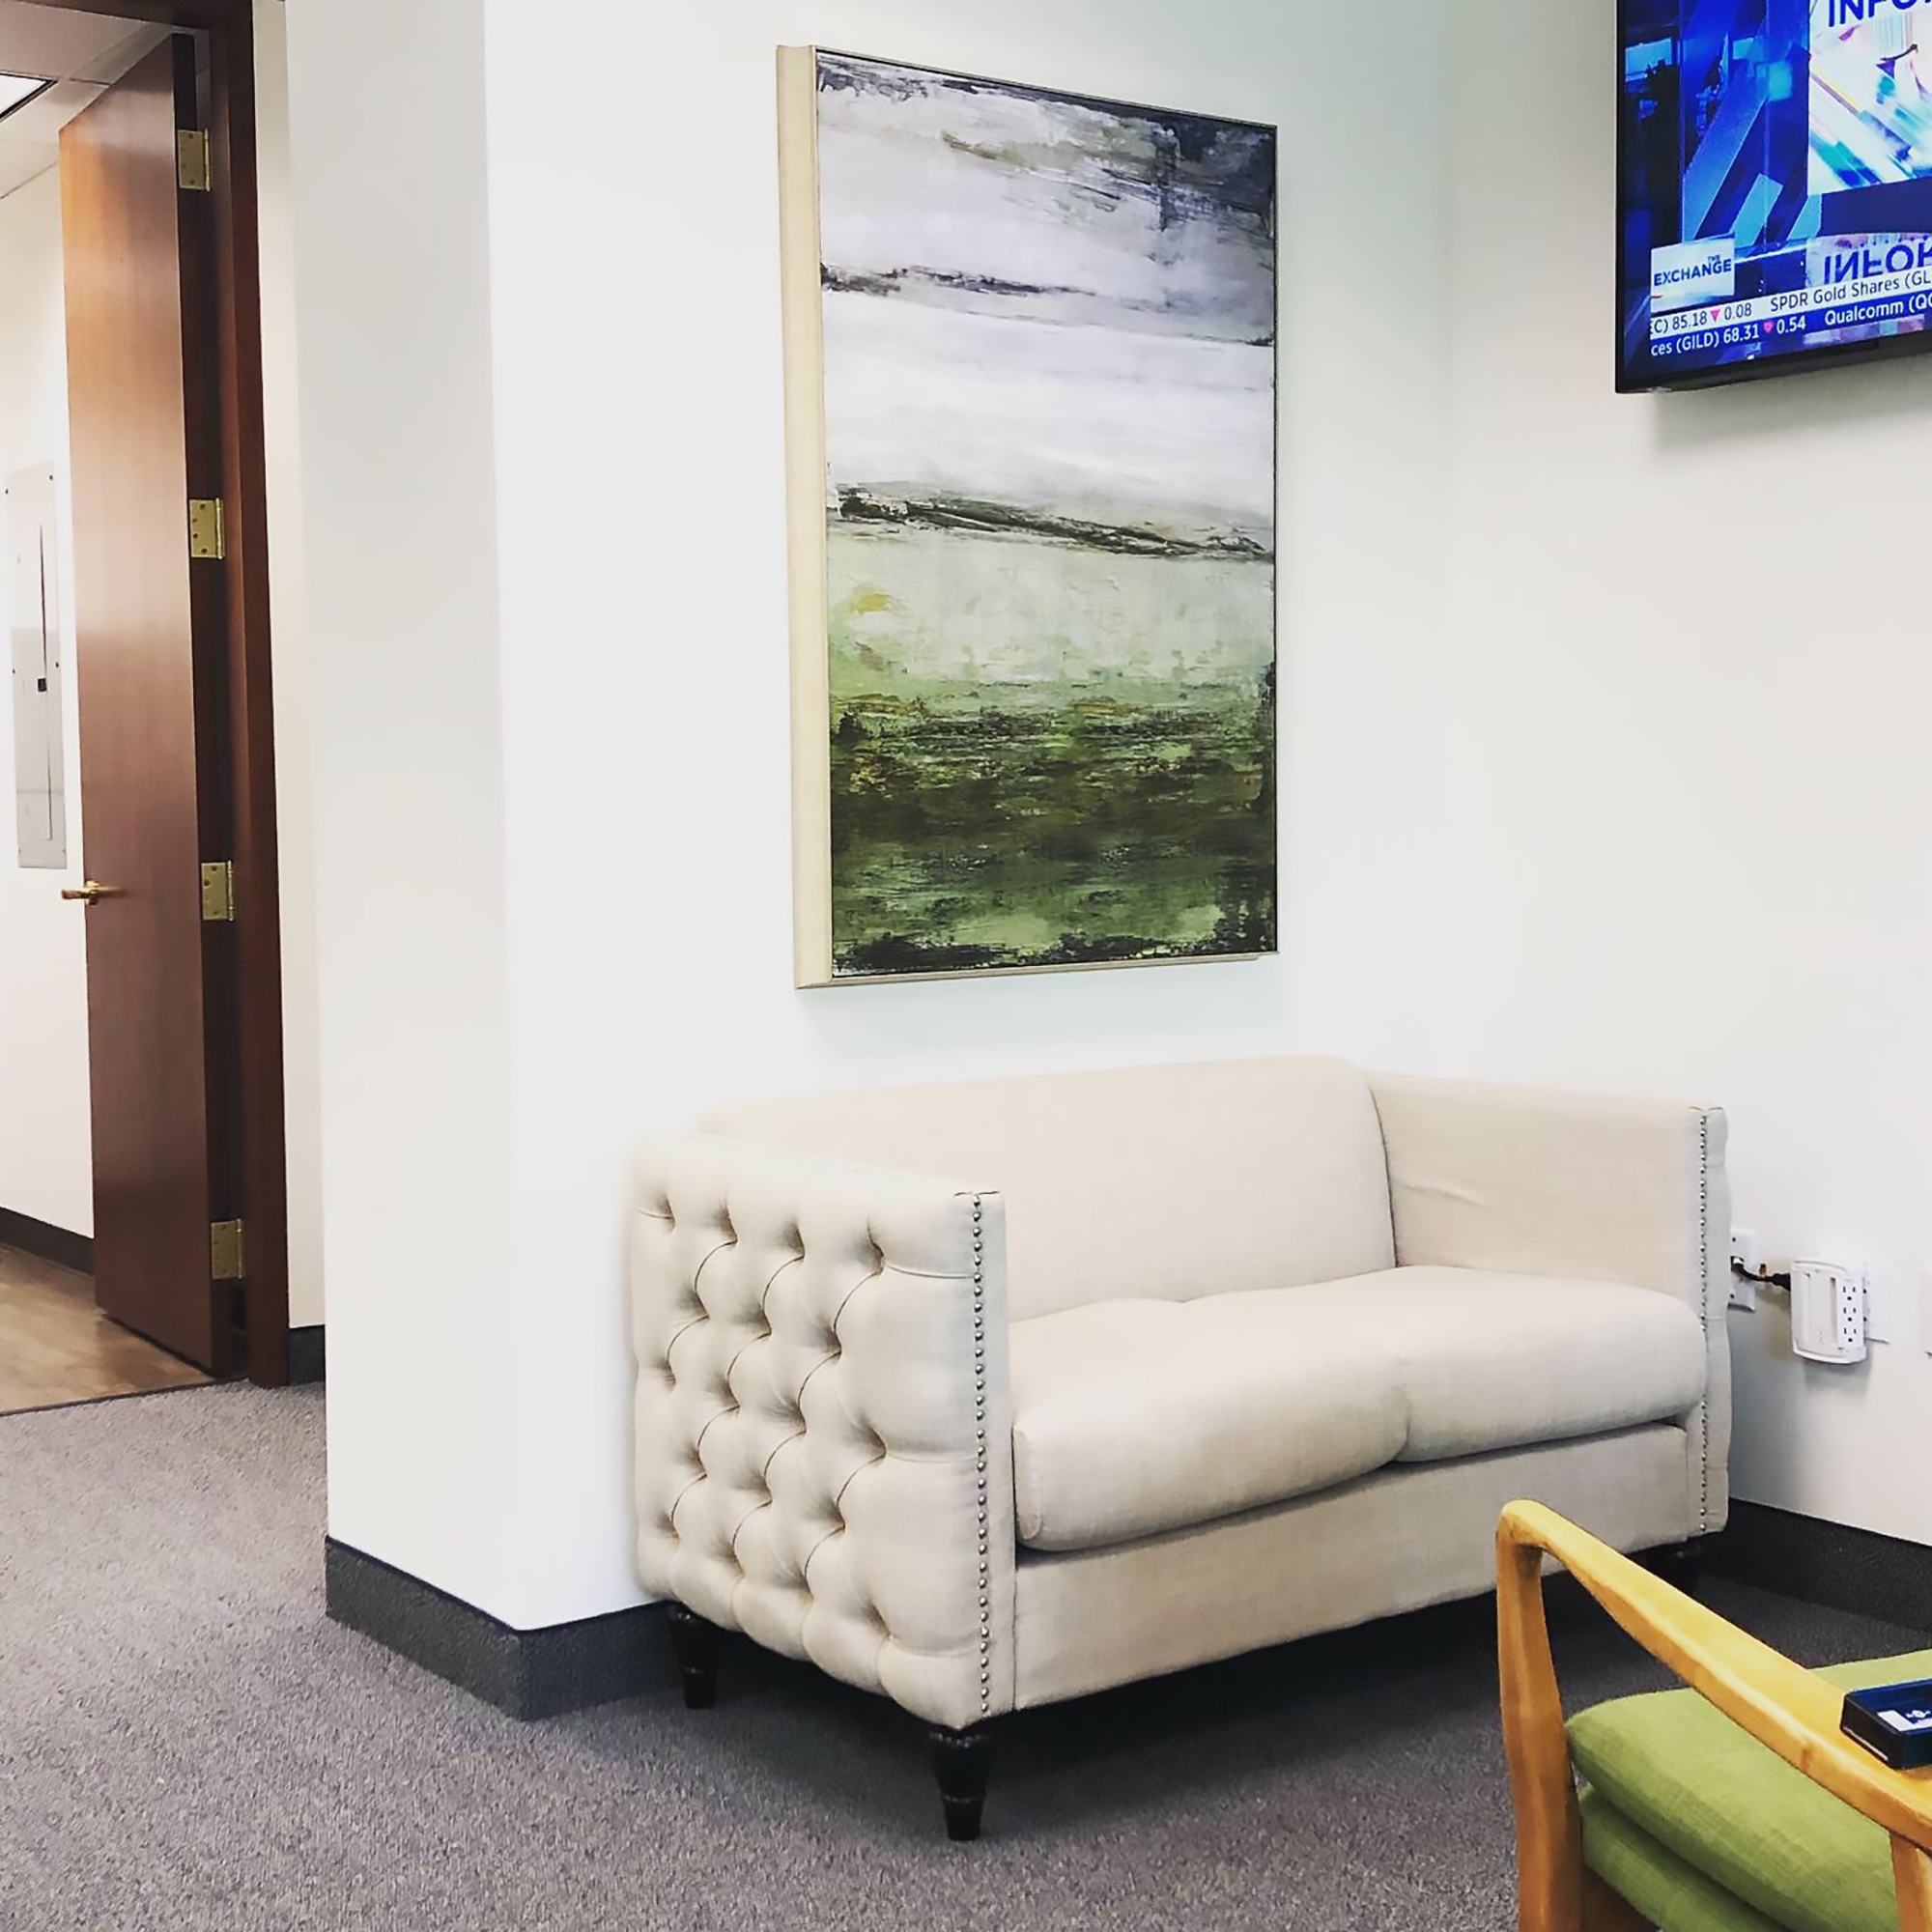 Artwork comes in many forms and for all budgets so let's take a look at some great, affordable selections such as the piece shown below that we hung in our client's reception area.